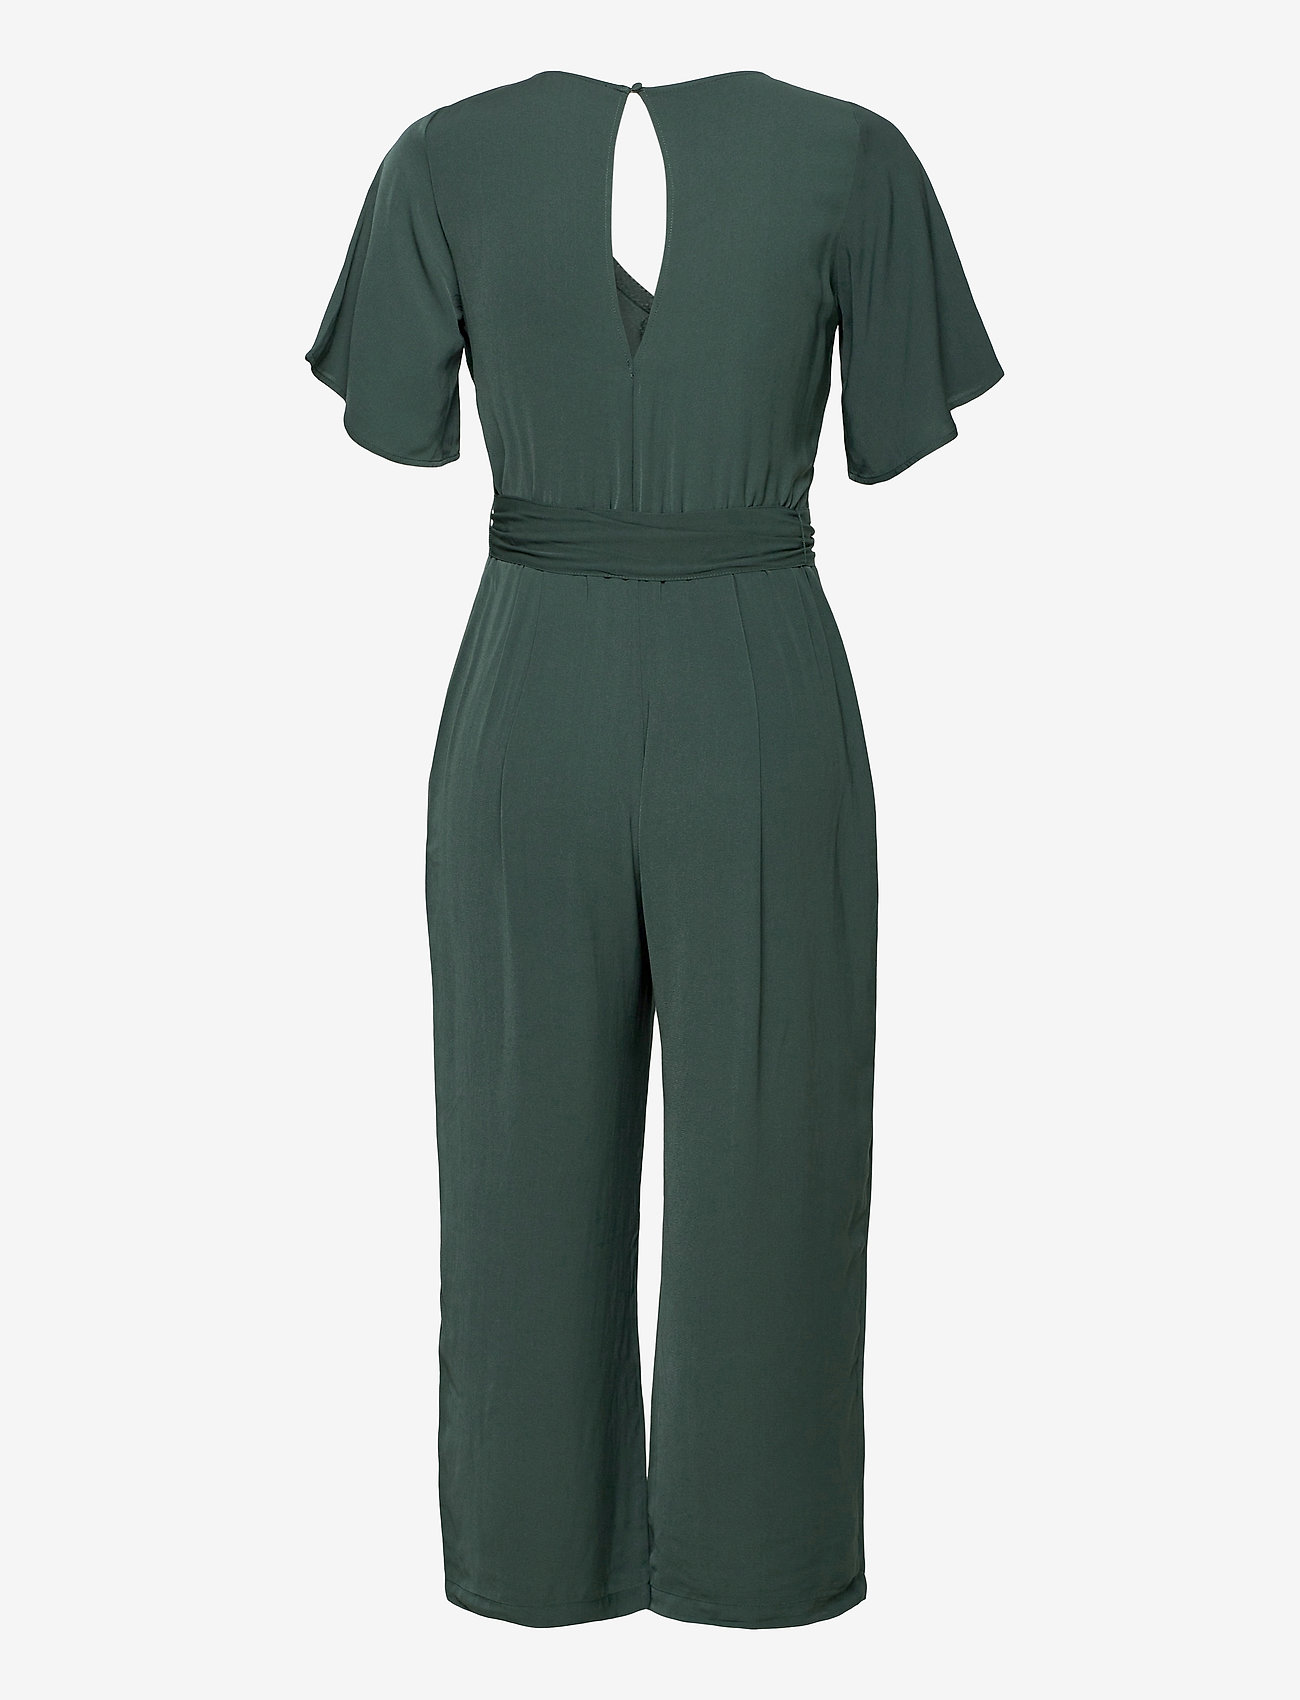 Abercrombie & Fitch - ANF WOMENS DRESSES - jumpsuits - green dd - 1